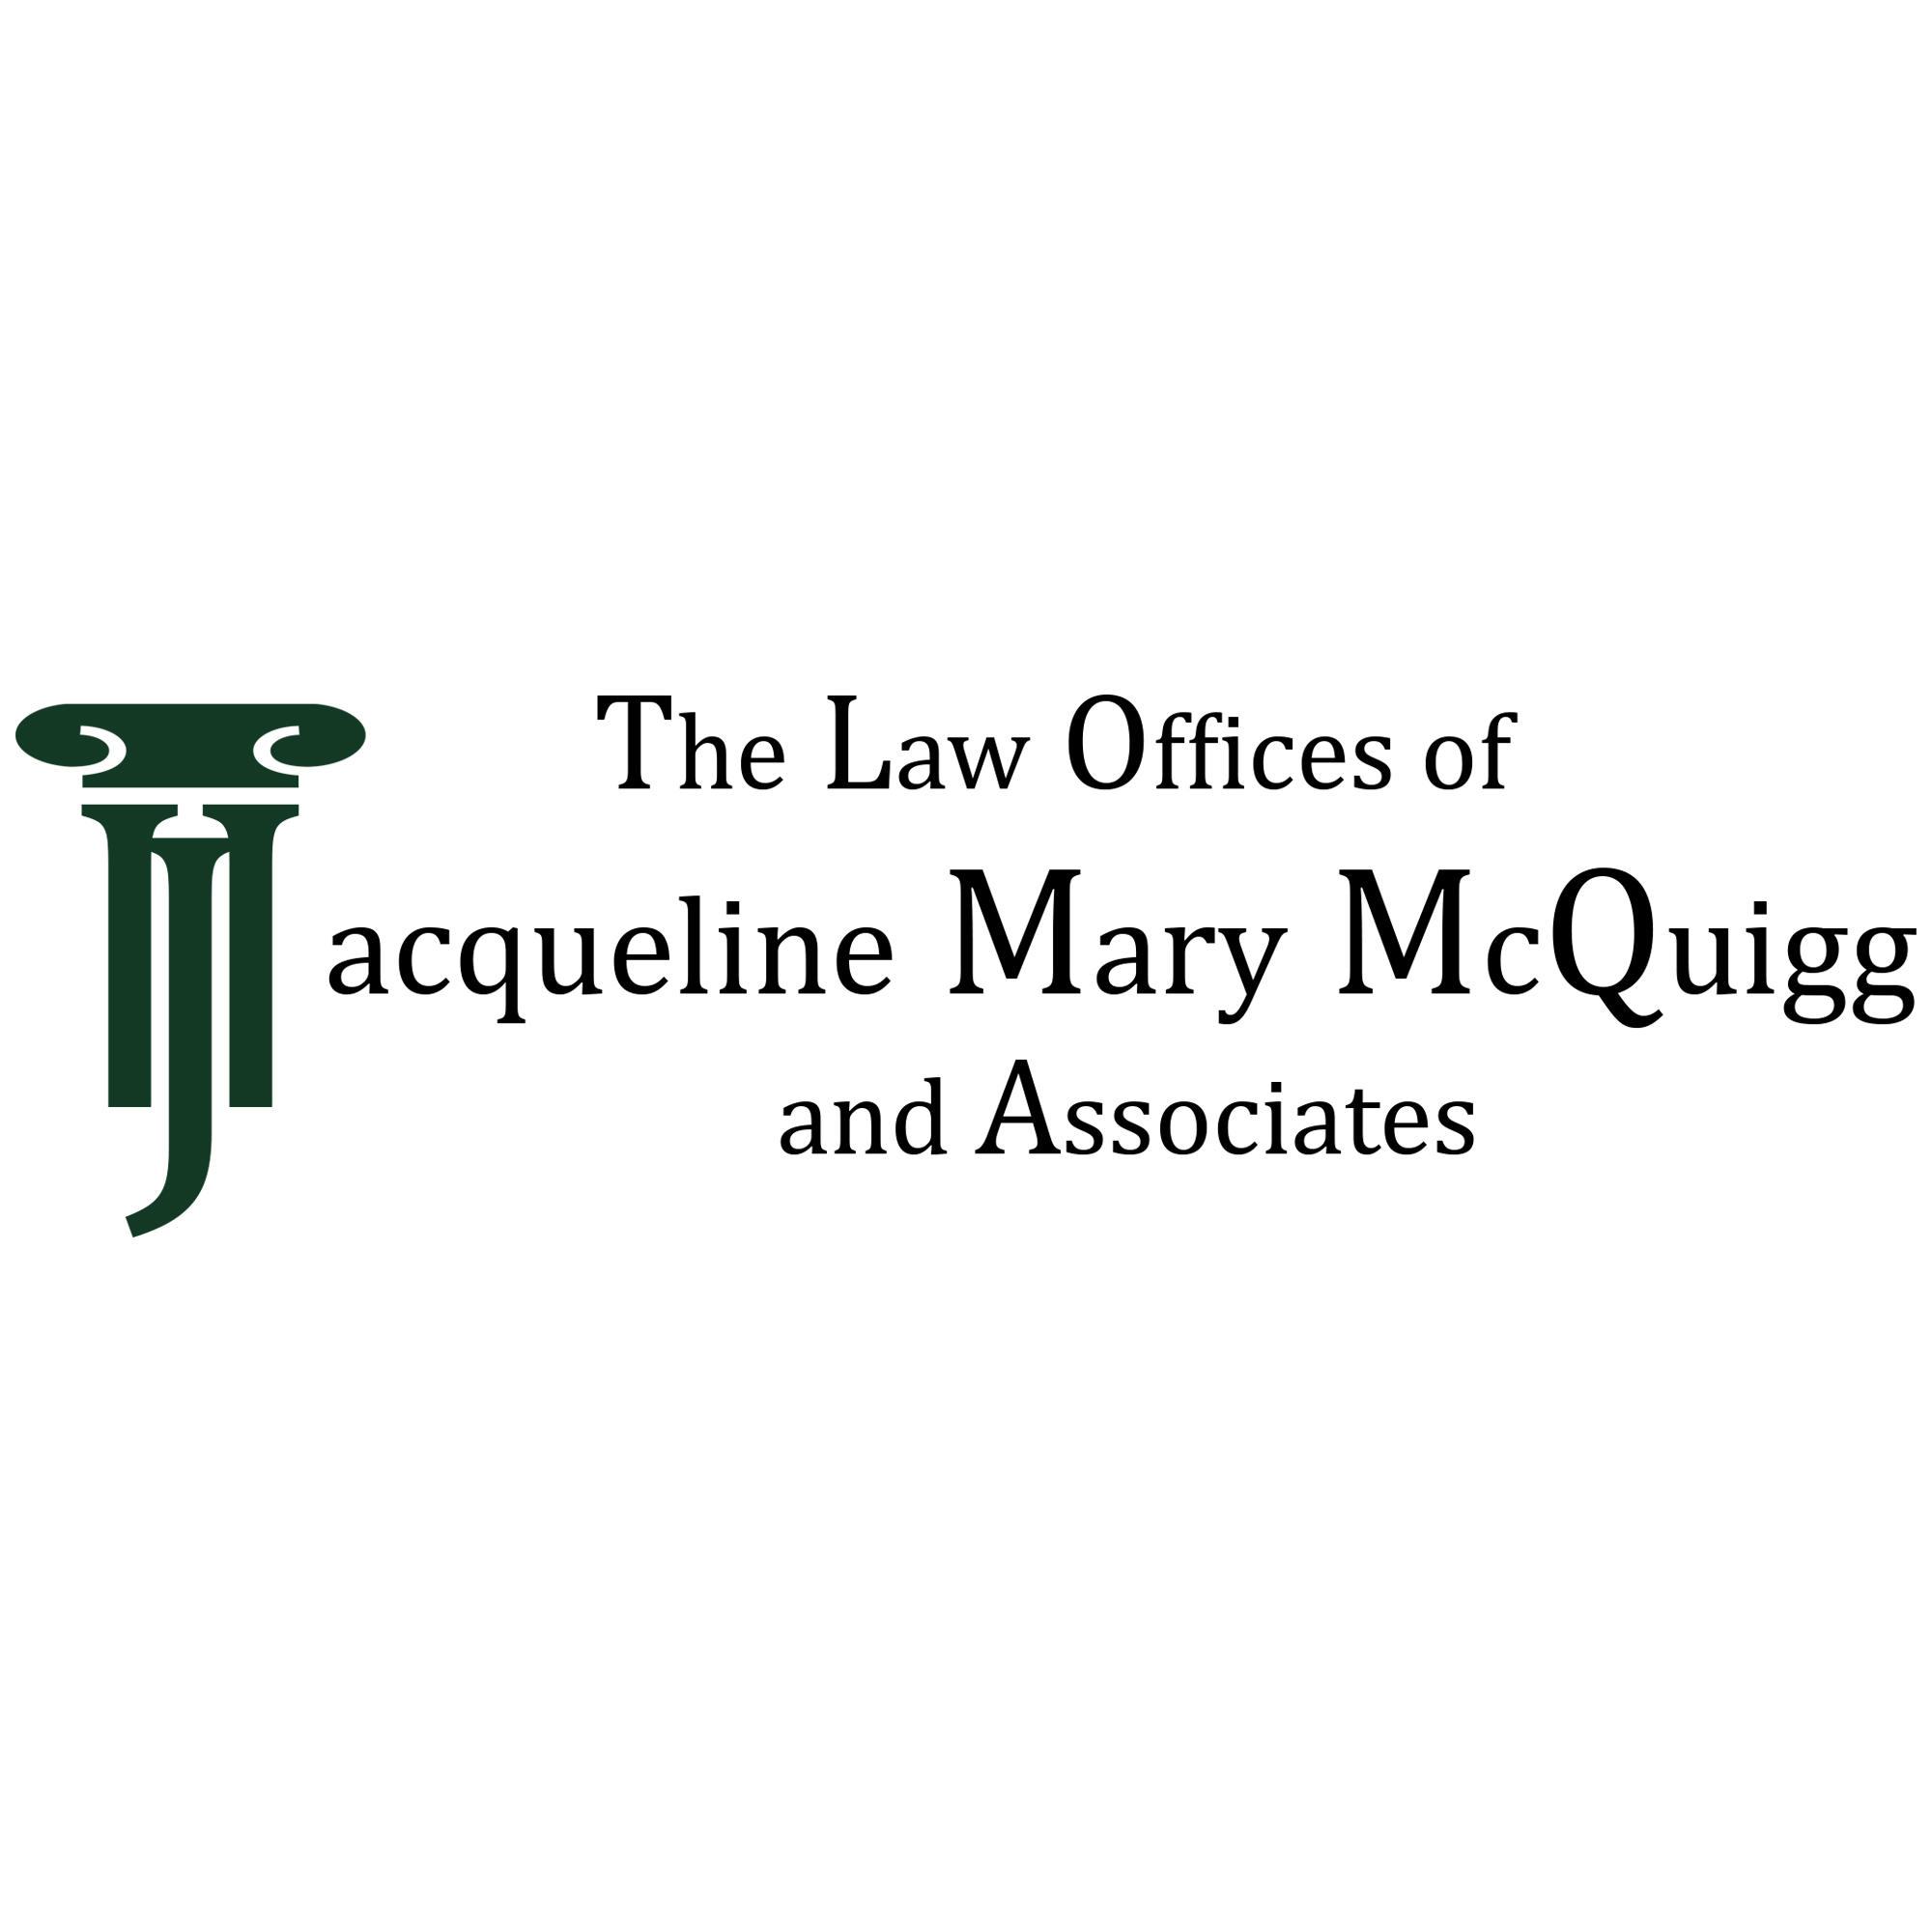 The Law Offices of Jacqueline Mary McQuigg and Assoc.